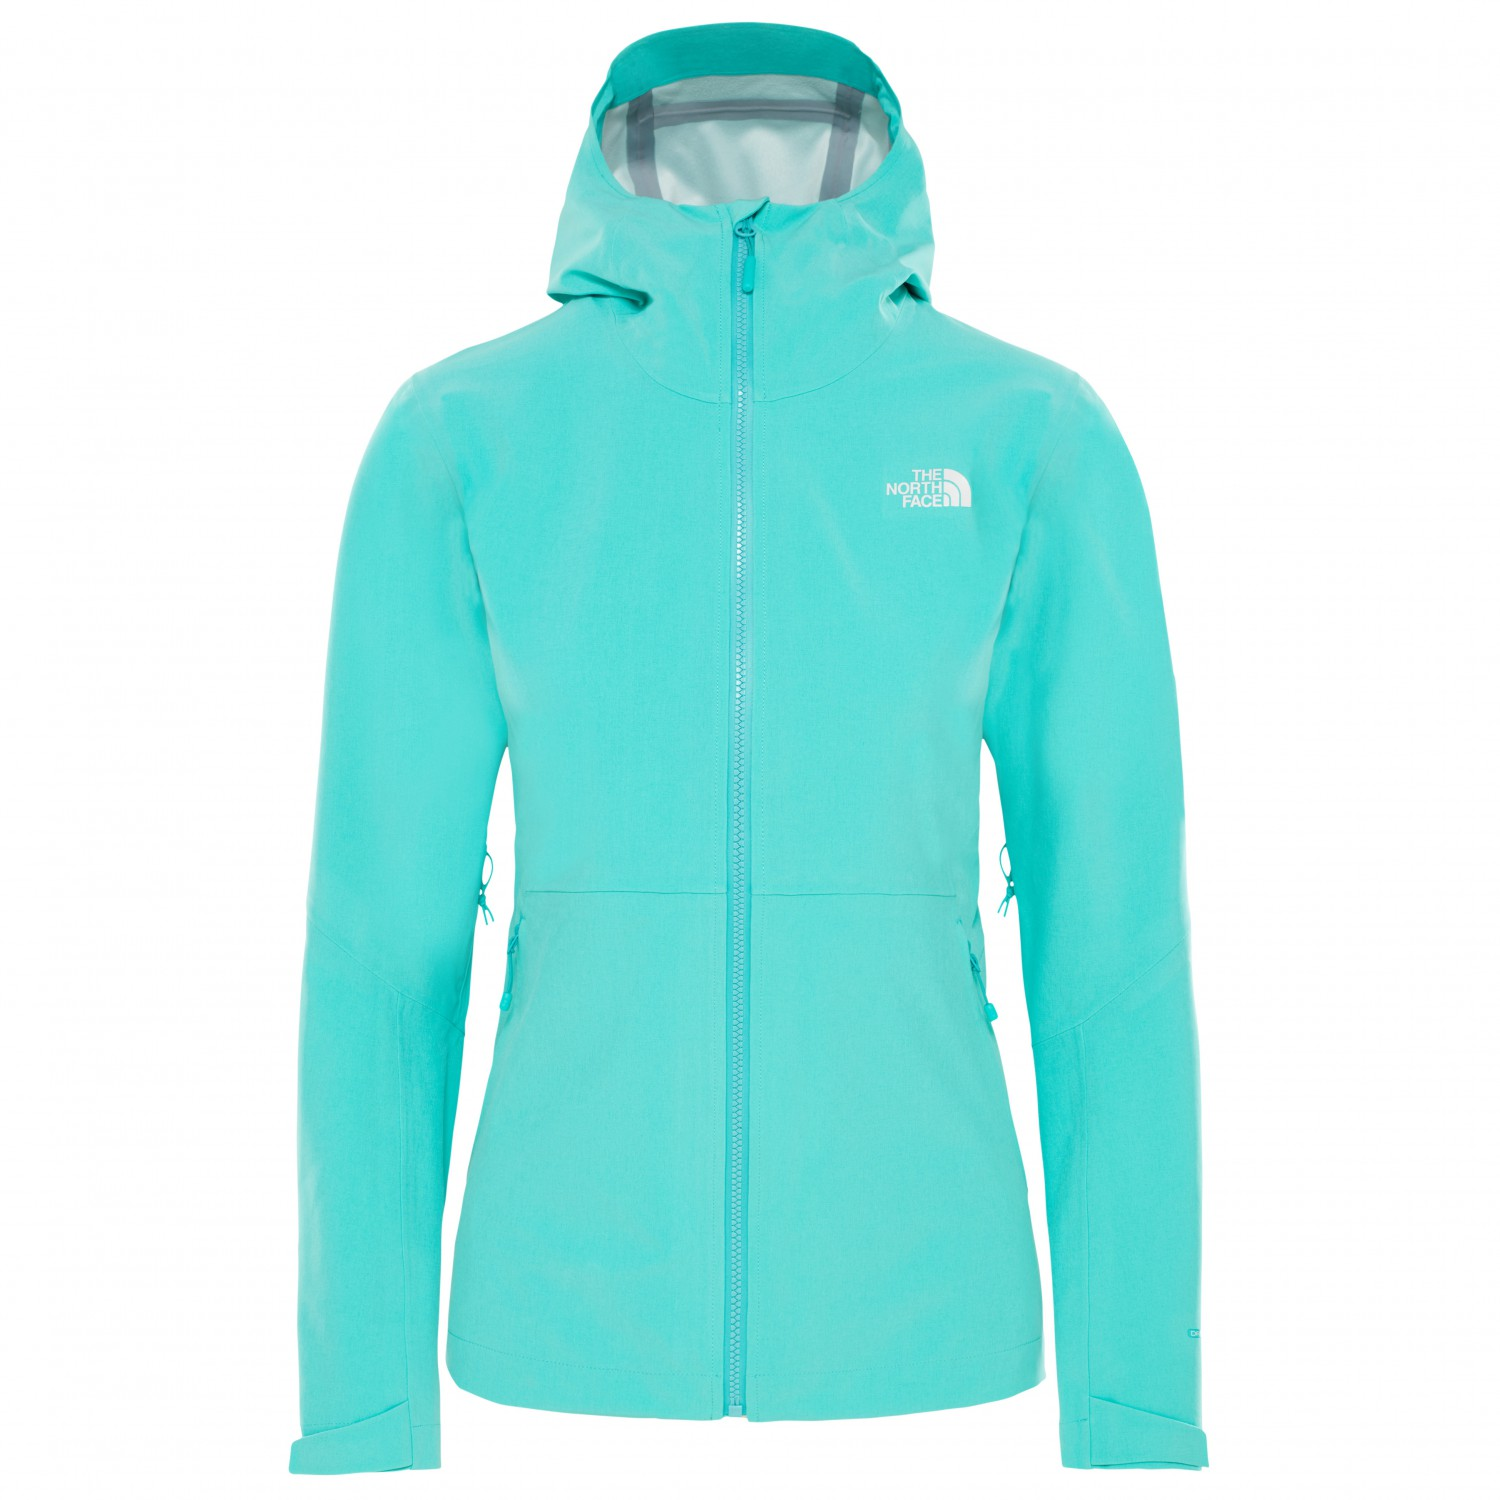 292e5f338 The North Face - Women's Apex Flex DryVent - Waterproof jacket - Blue Wing  Teal | XS